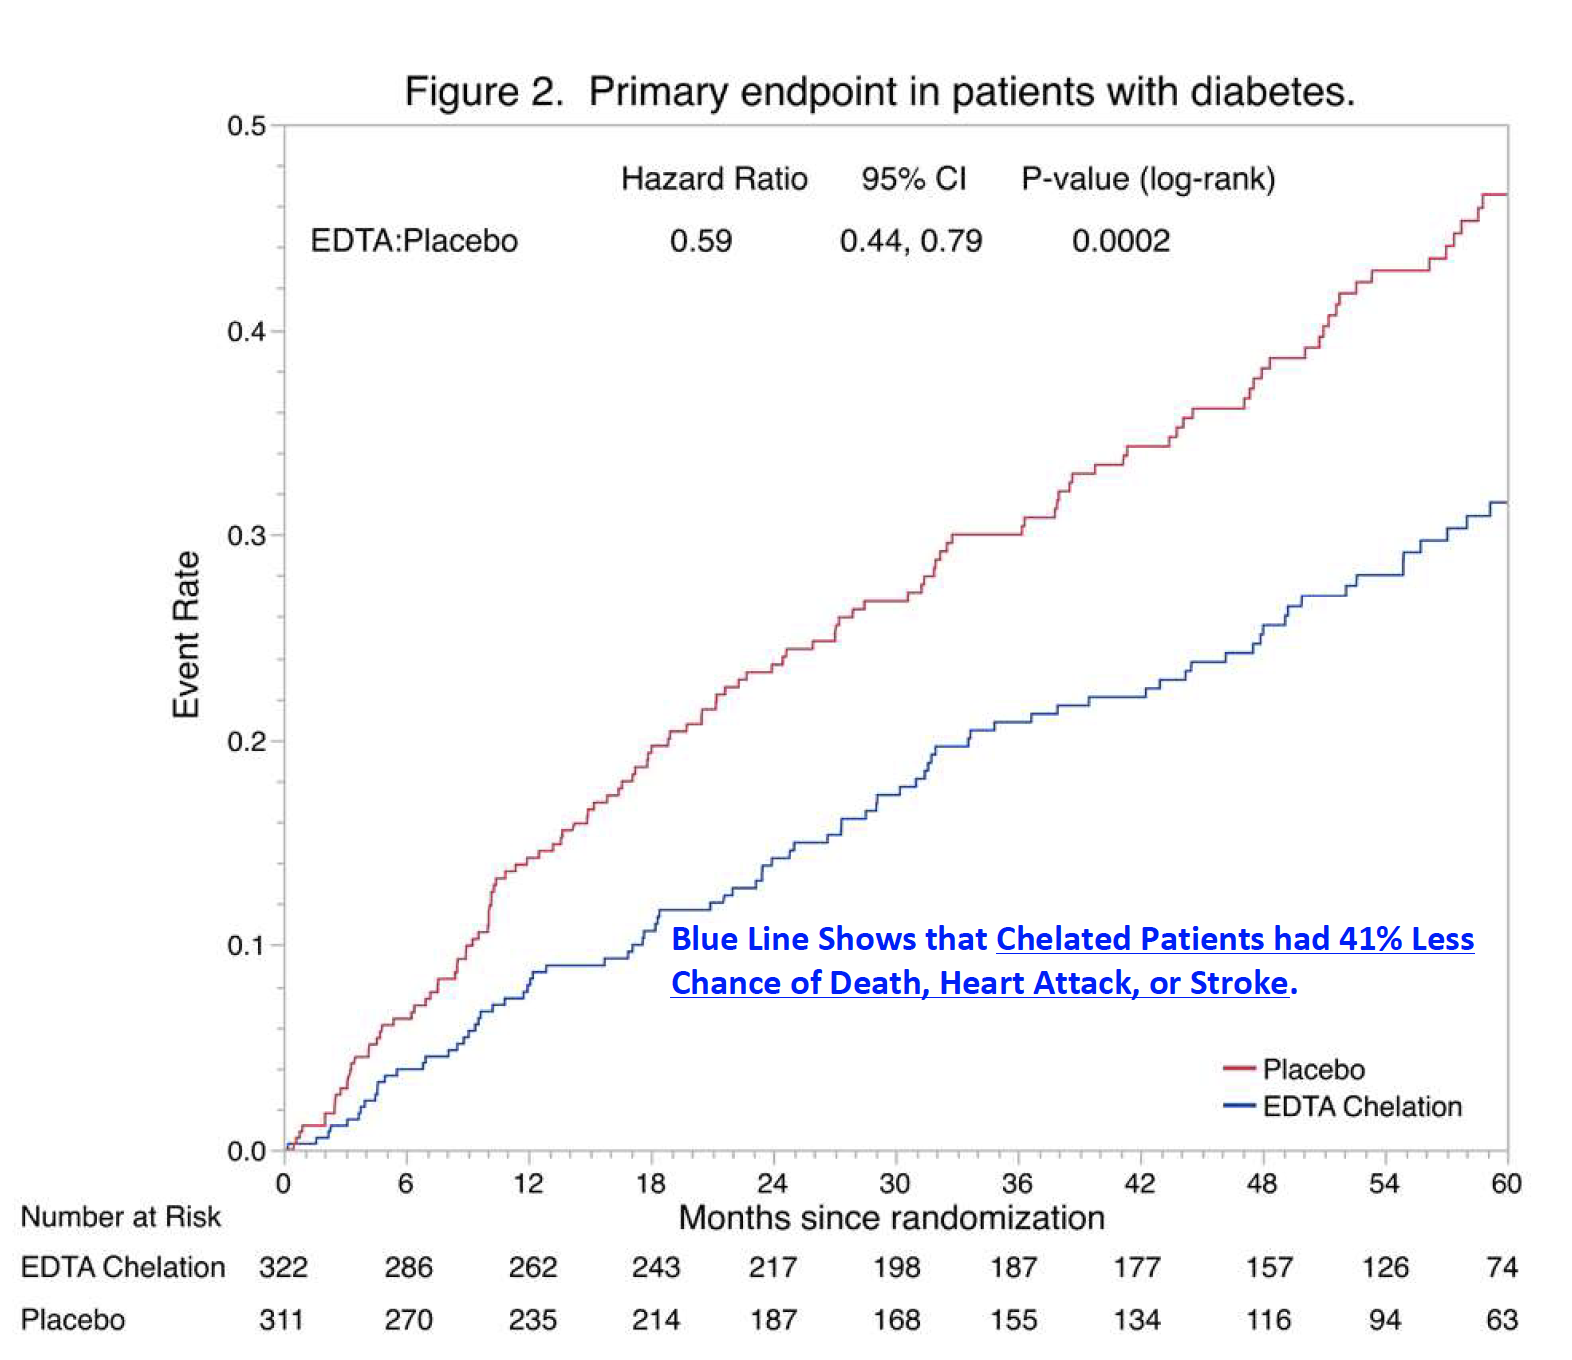 Figure 2. Primary endpoint in patients with diabetes